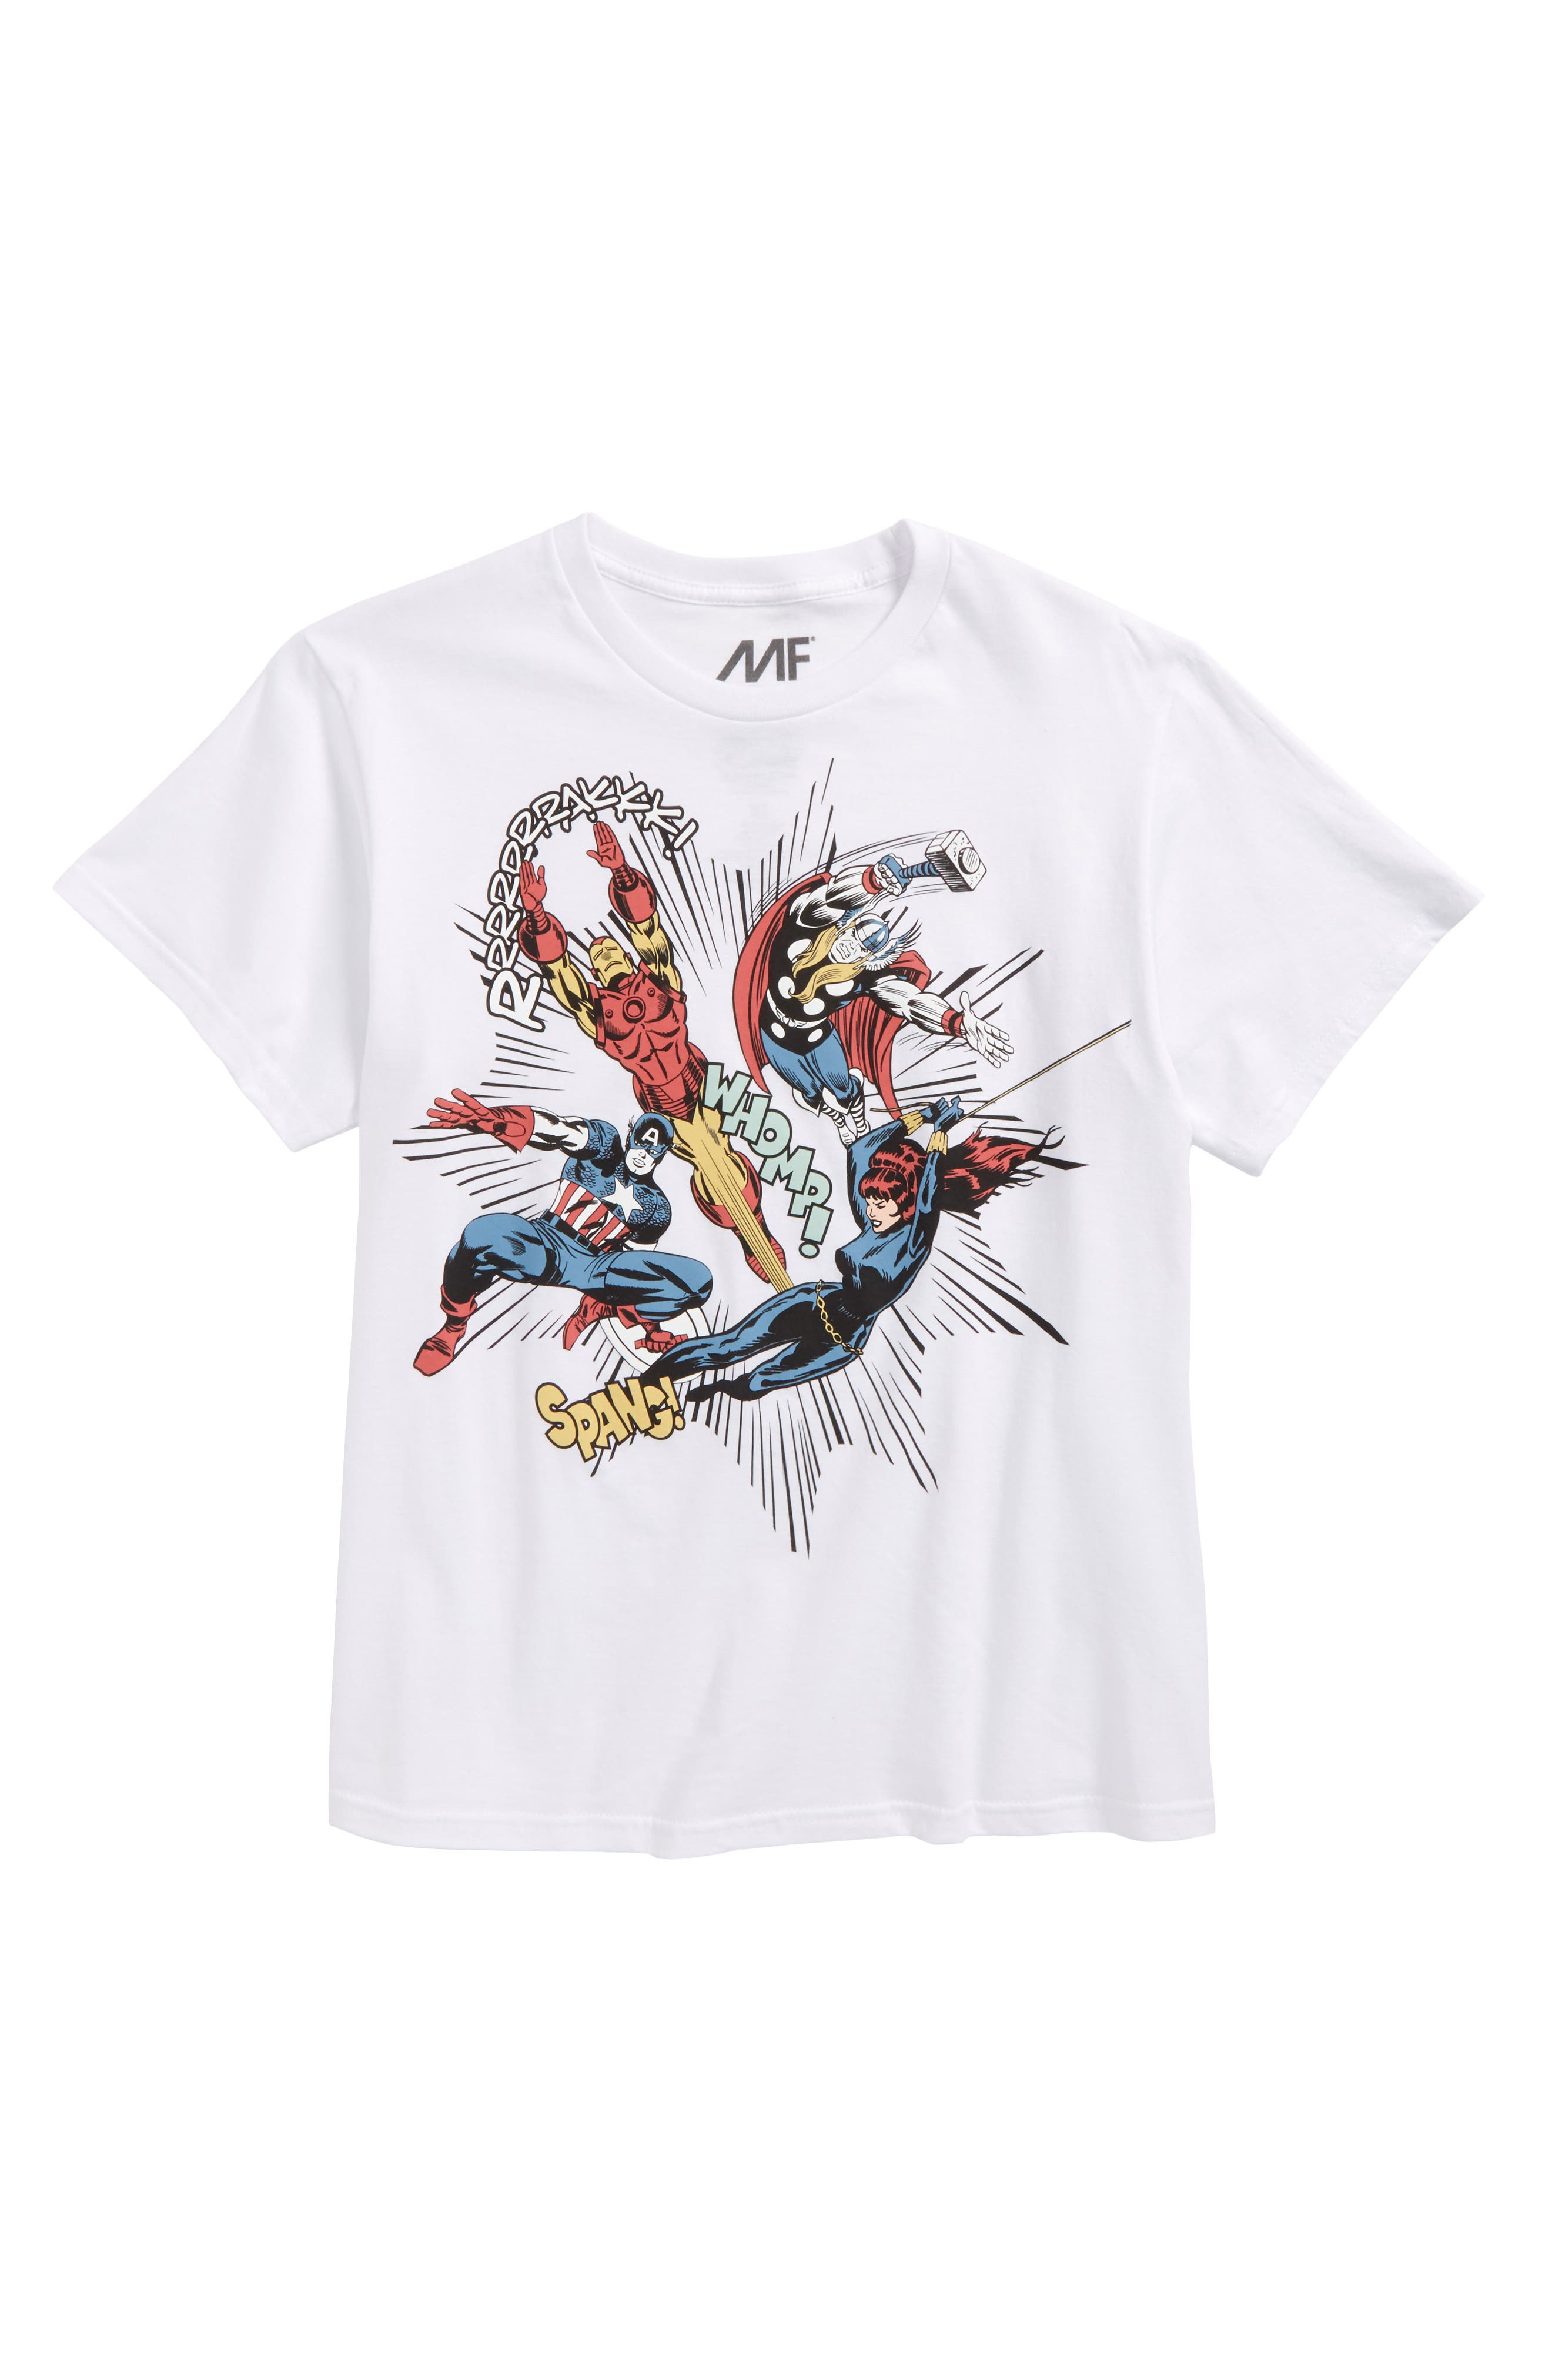 Avengers Oversided Action T-Shirt,                             Main thumbnail 1, color,                             100